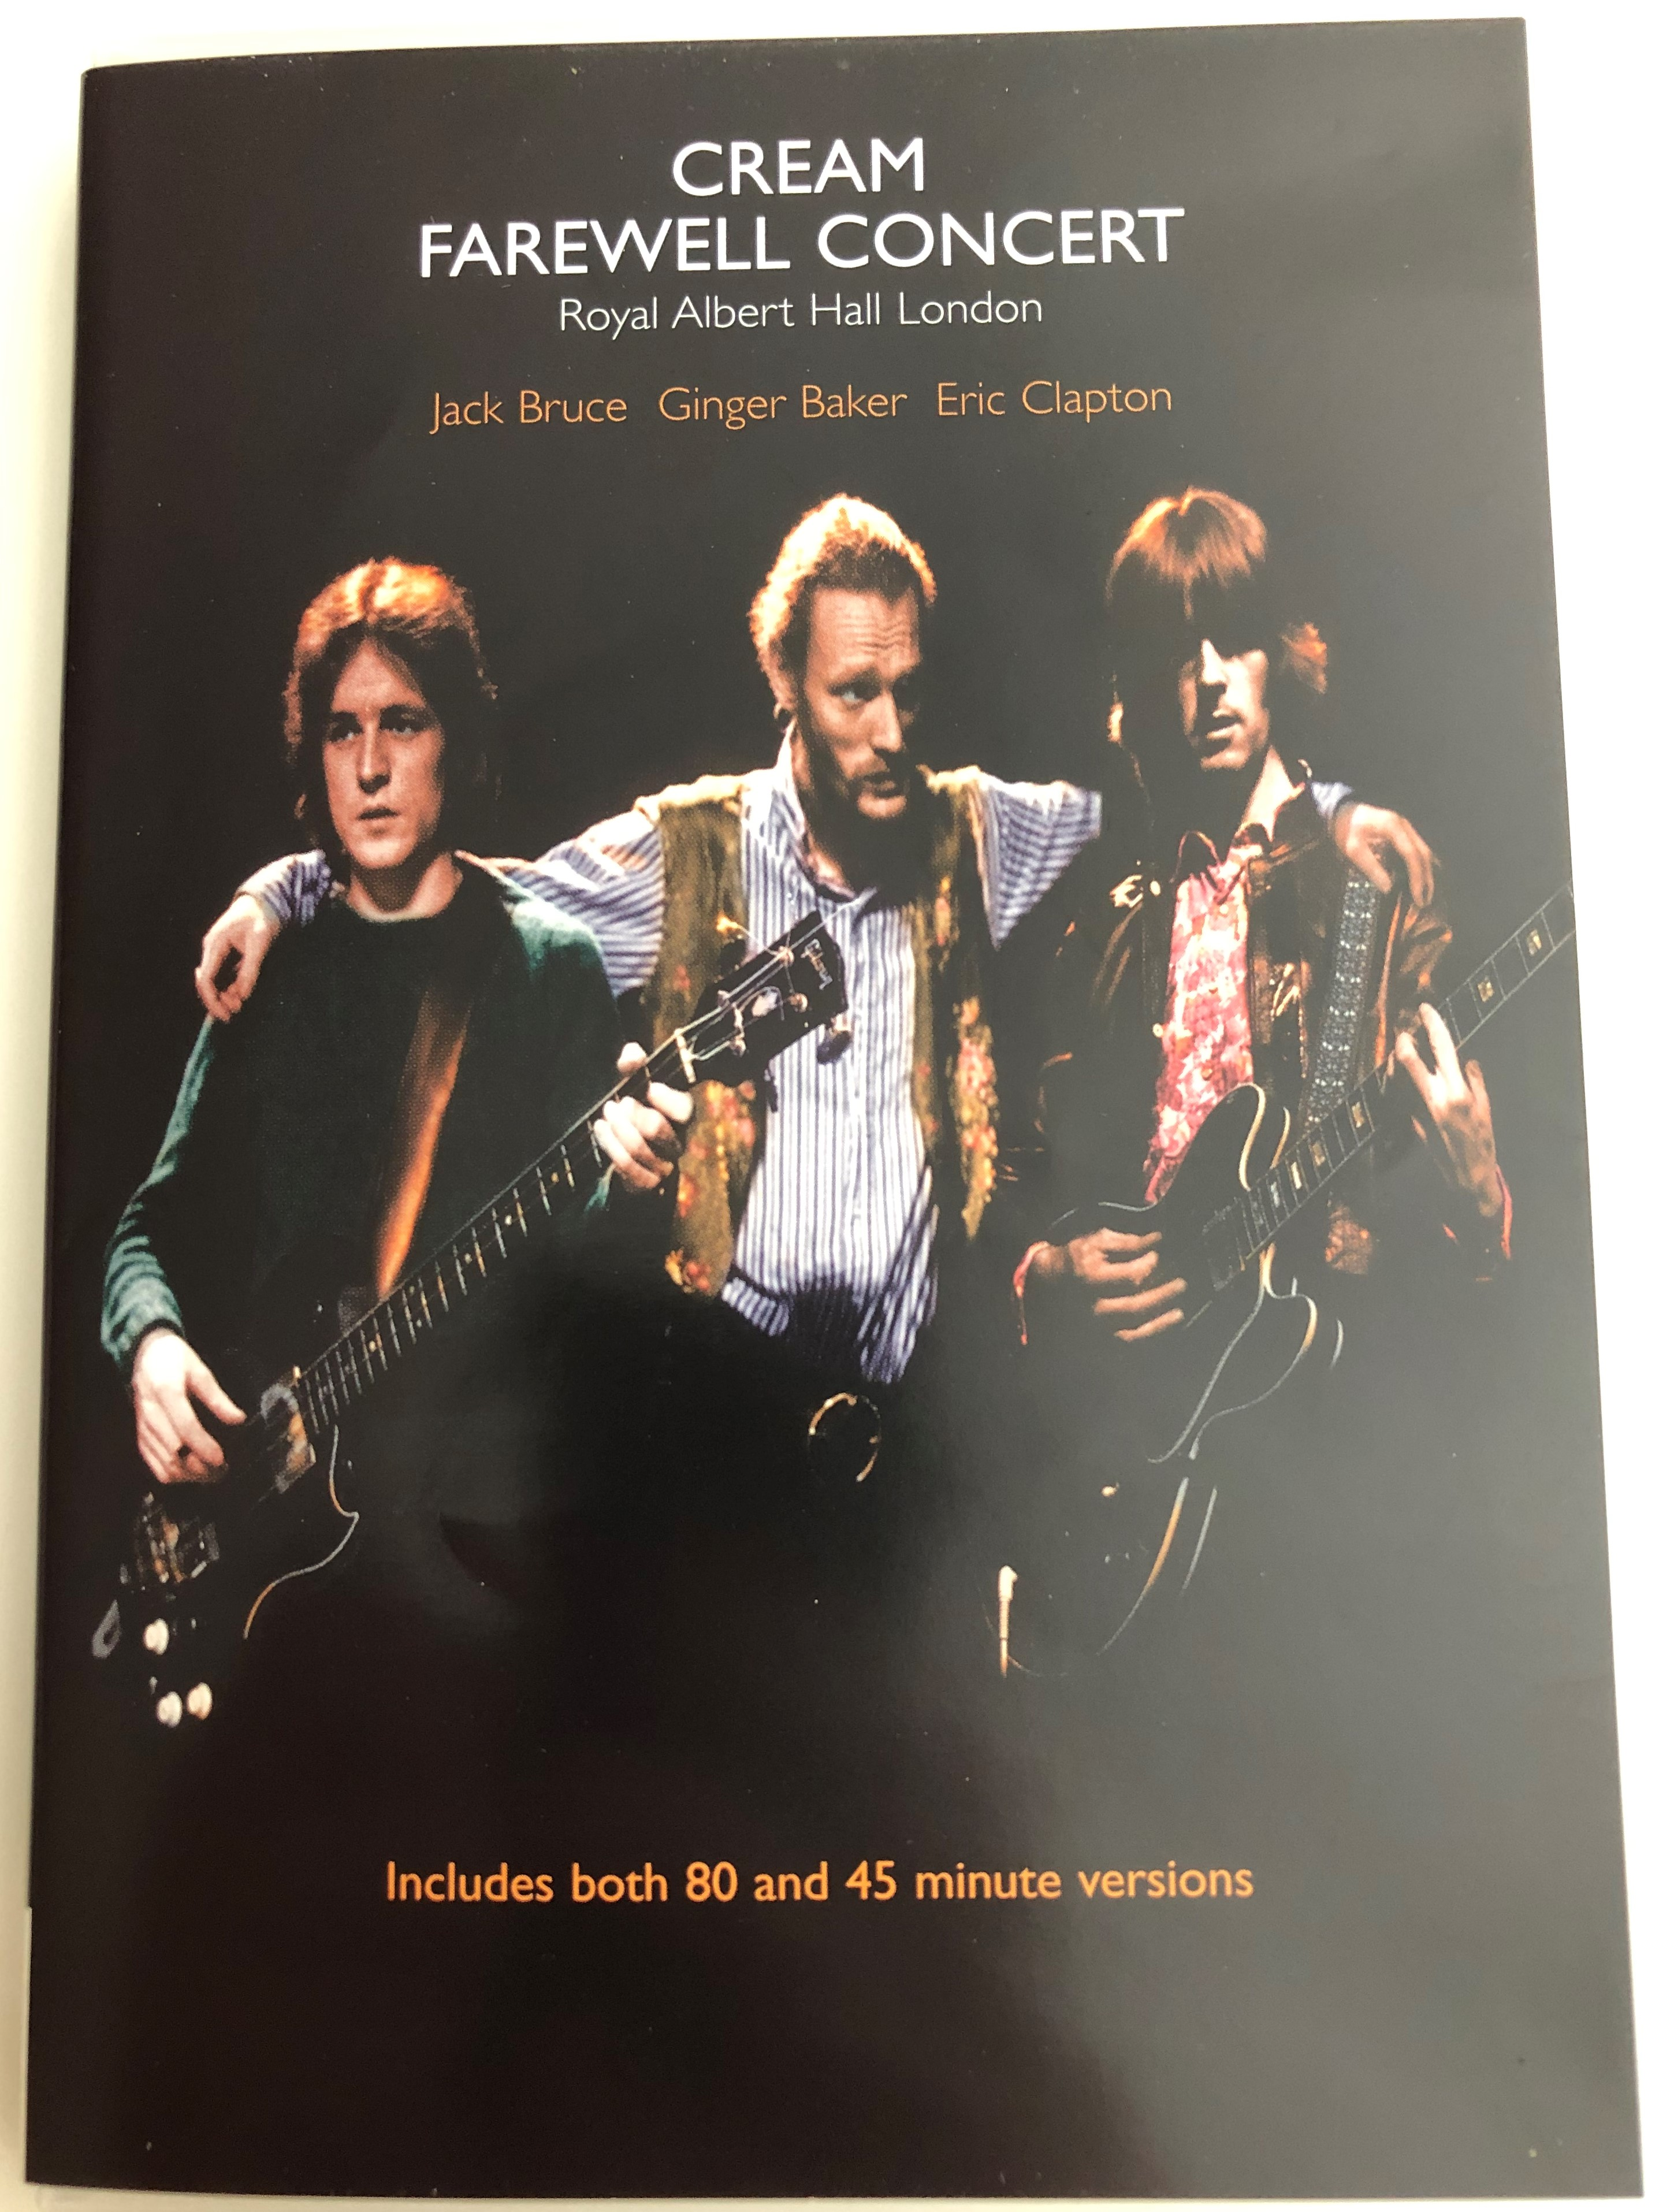 cream-farewell-concert-dvd-2001-royal-albert-hall-london-jack-bruce-ginger-baker-eric-clapton-includes-both-80-and-45-minute-versions-sony-bmg-1-.jpg